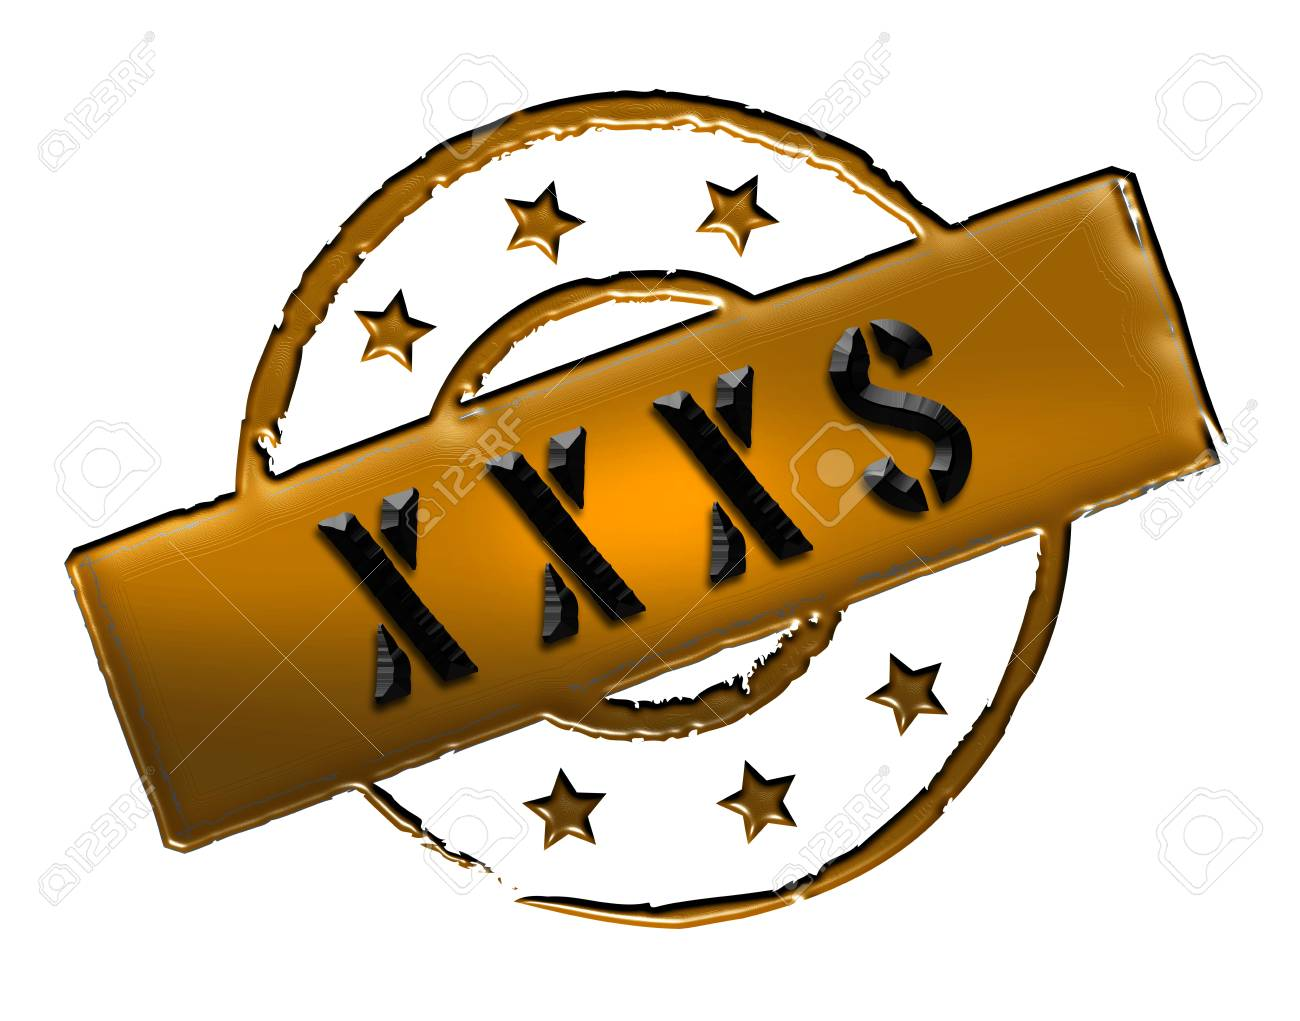 Sign, symbol, stamp or icon for your presentation, for websites and many more named XXXS Stock Photo - 13802188